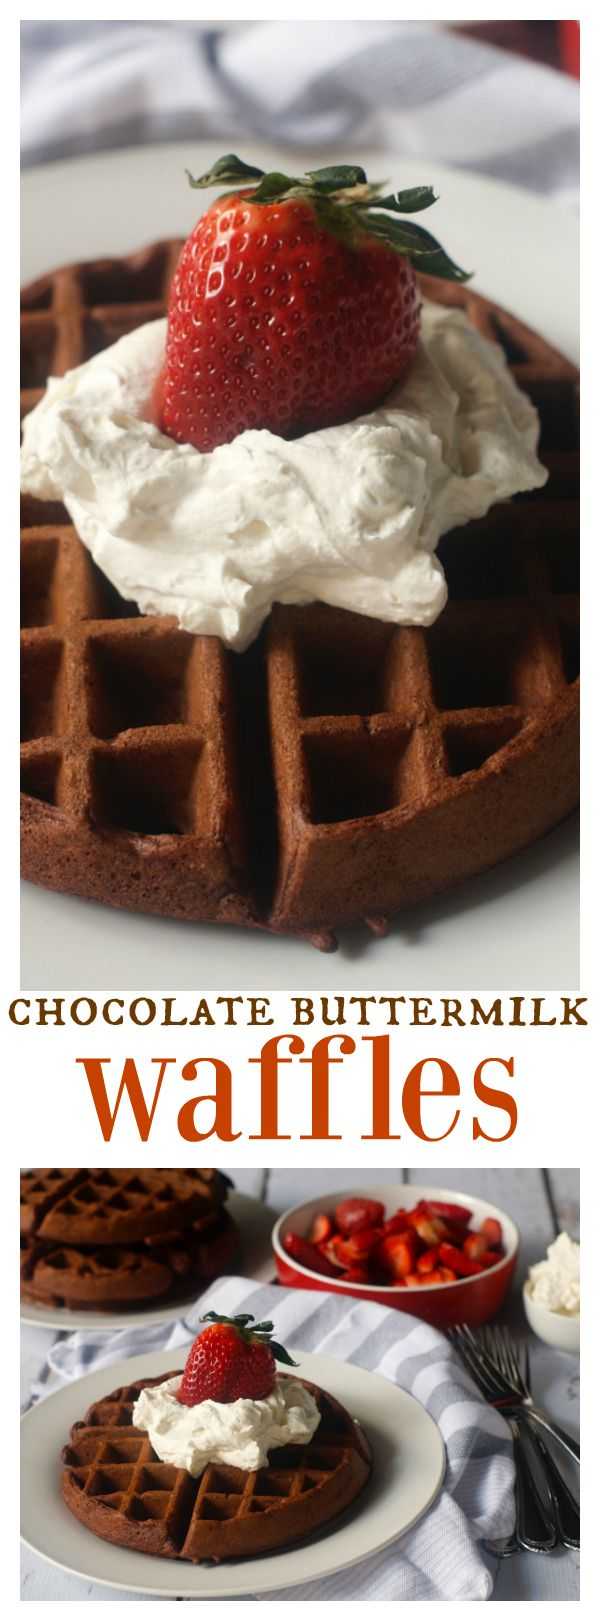 Chocolate Buttermilk Waffles are delicious served for breakfast, brunch, lunch, or dinner, topped off with fresh strawberries and whipped cream!